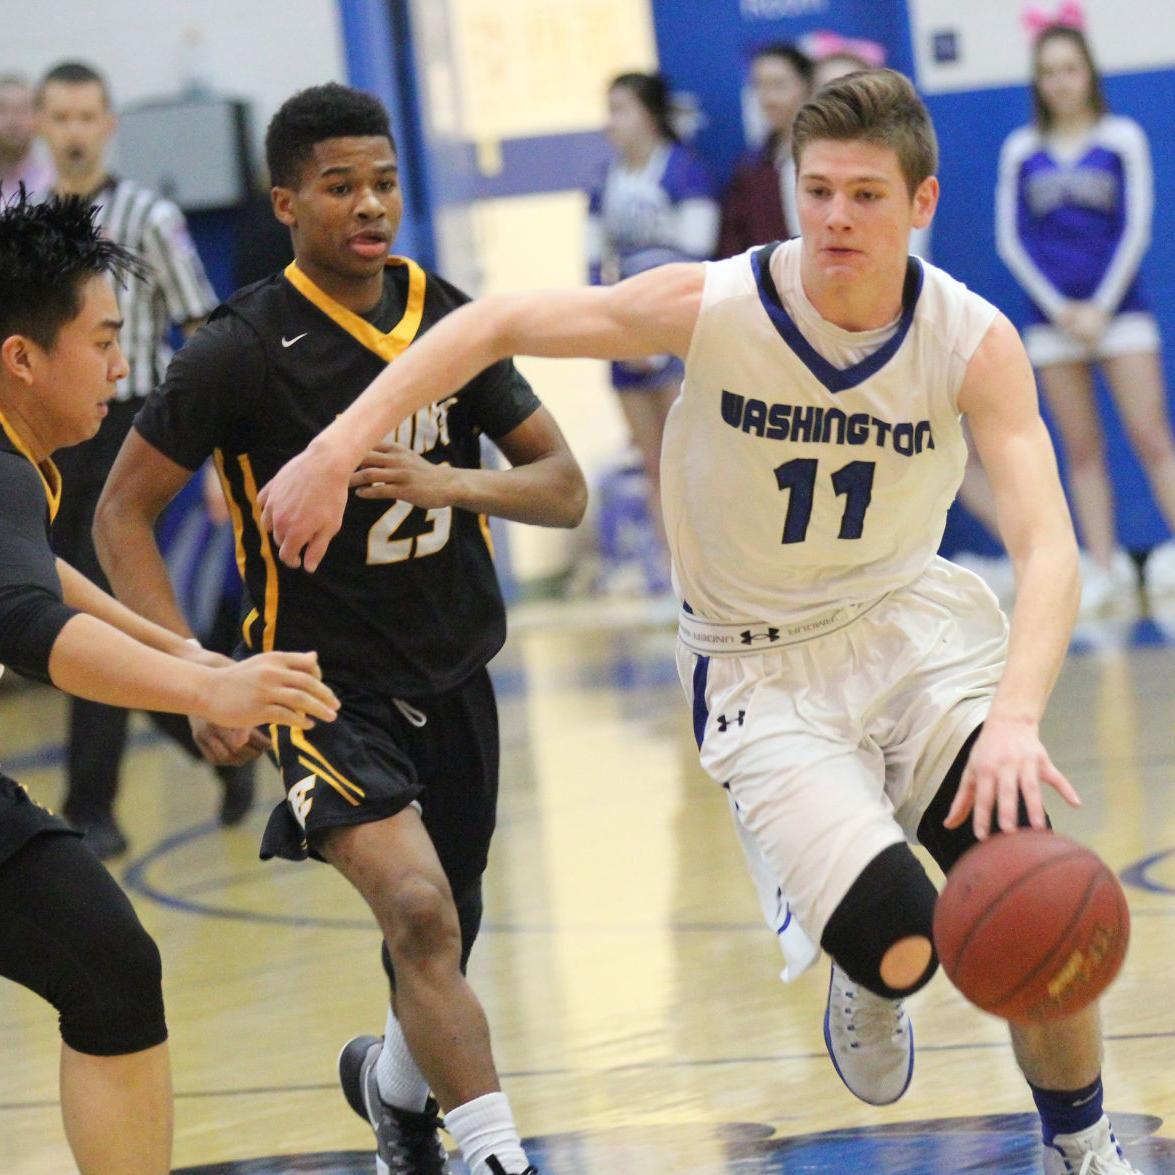 Boys Basketball — Washington vs. Ft. Zumwalt East